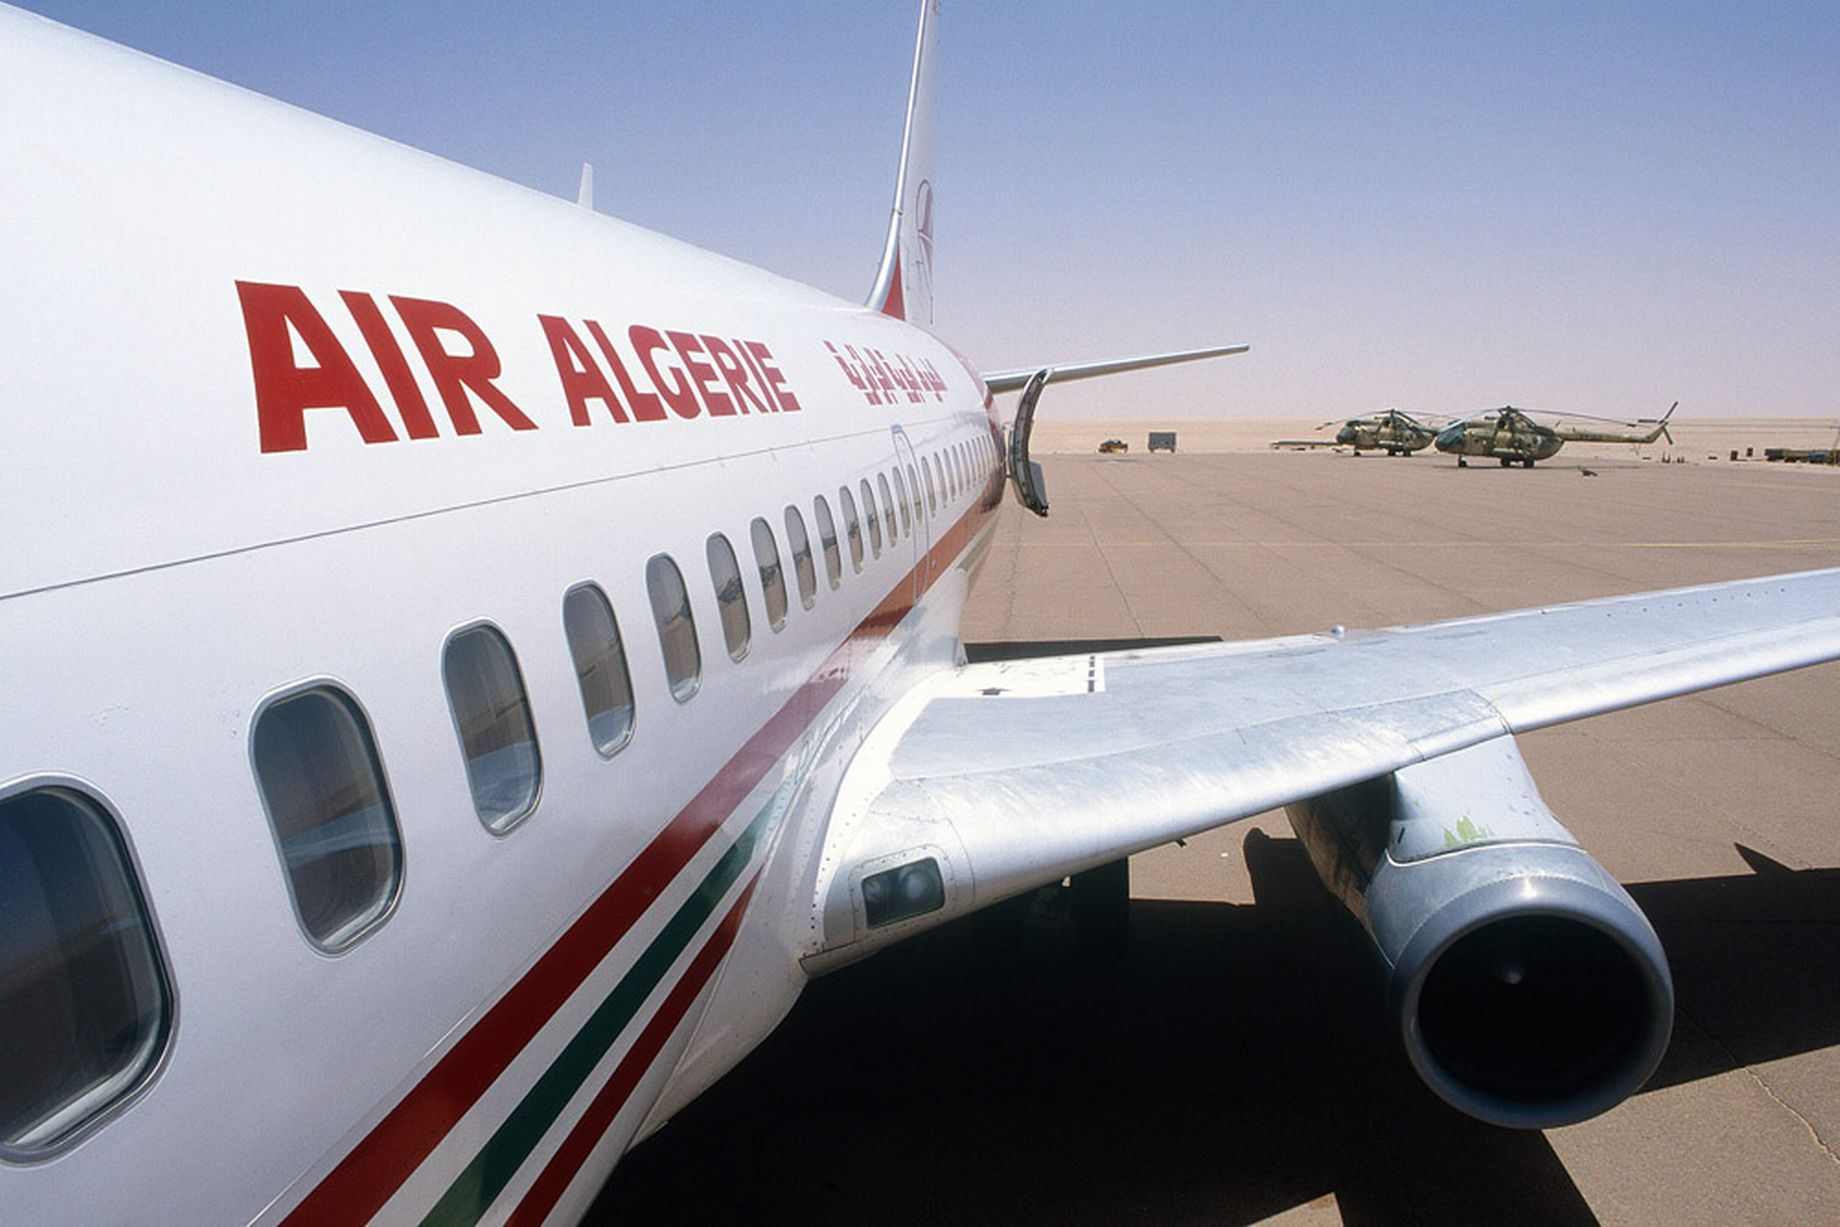 La liaison ouargla tunis report e une date ult rieure for Air algerie reservation vol interieur